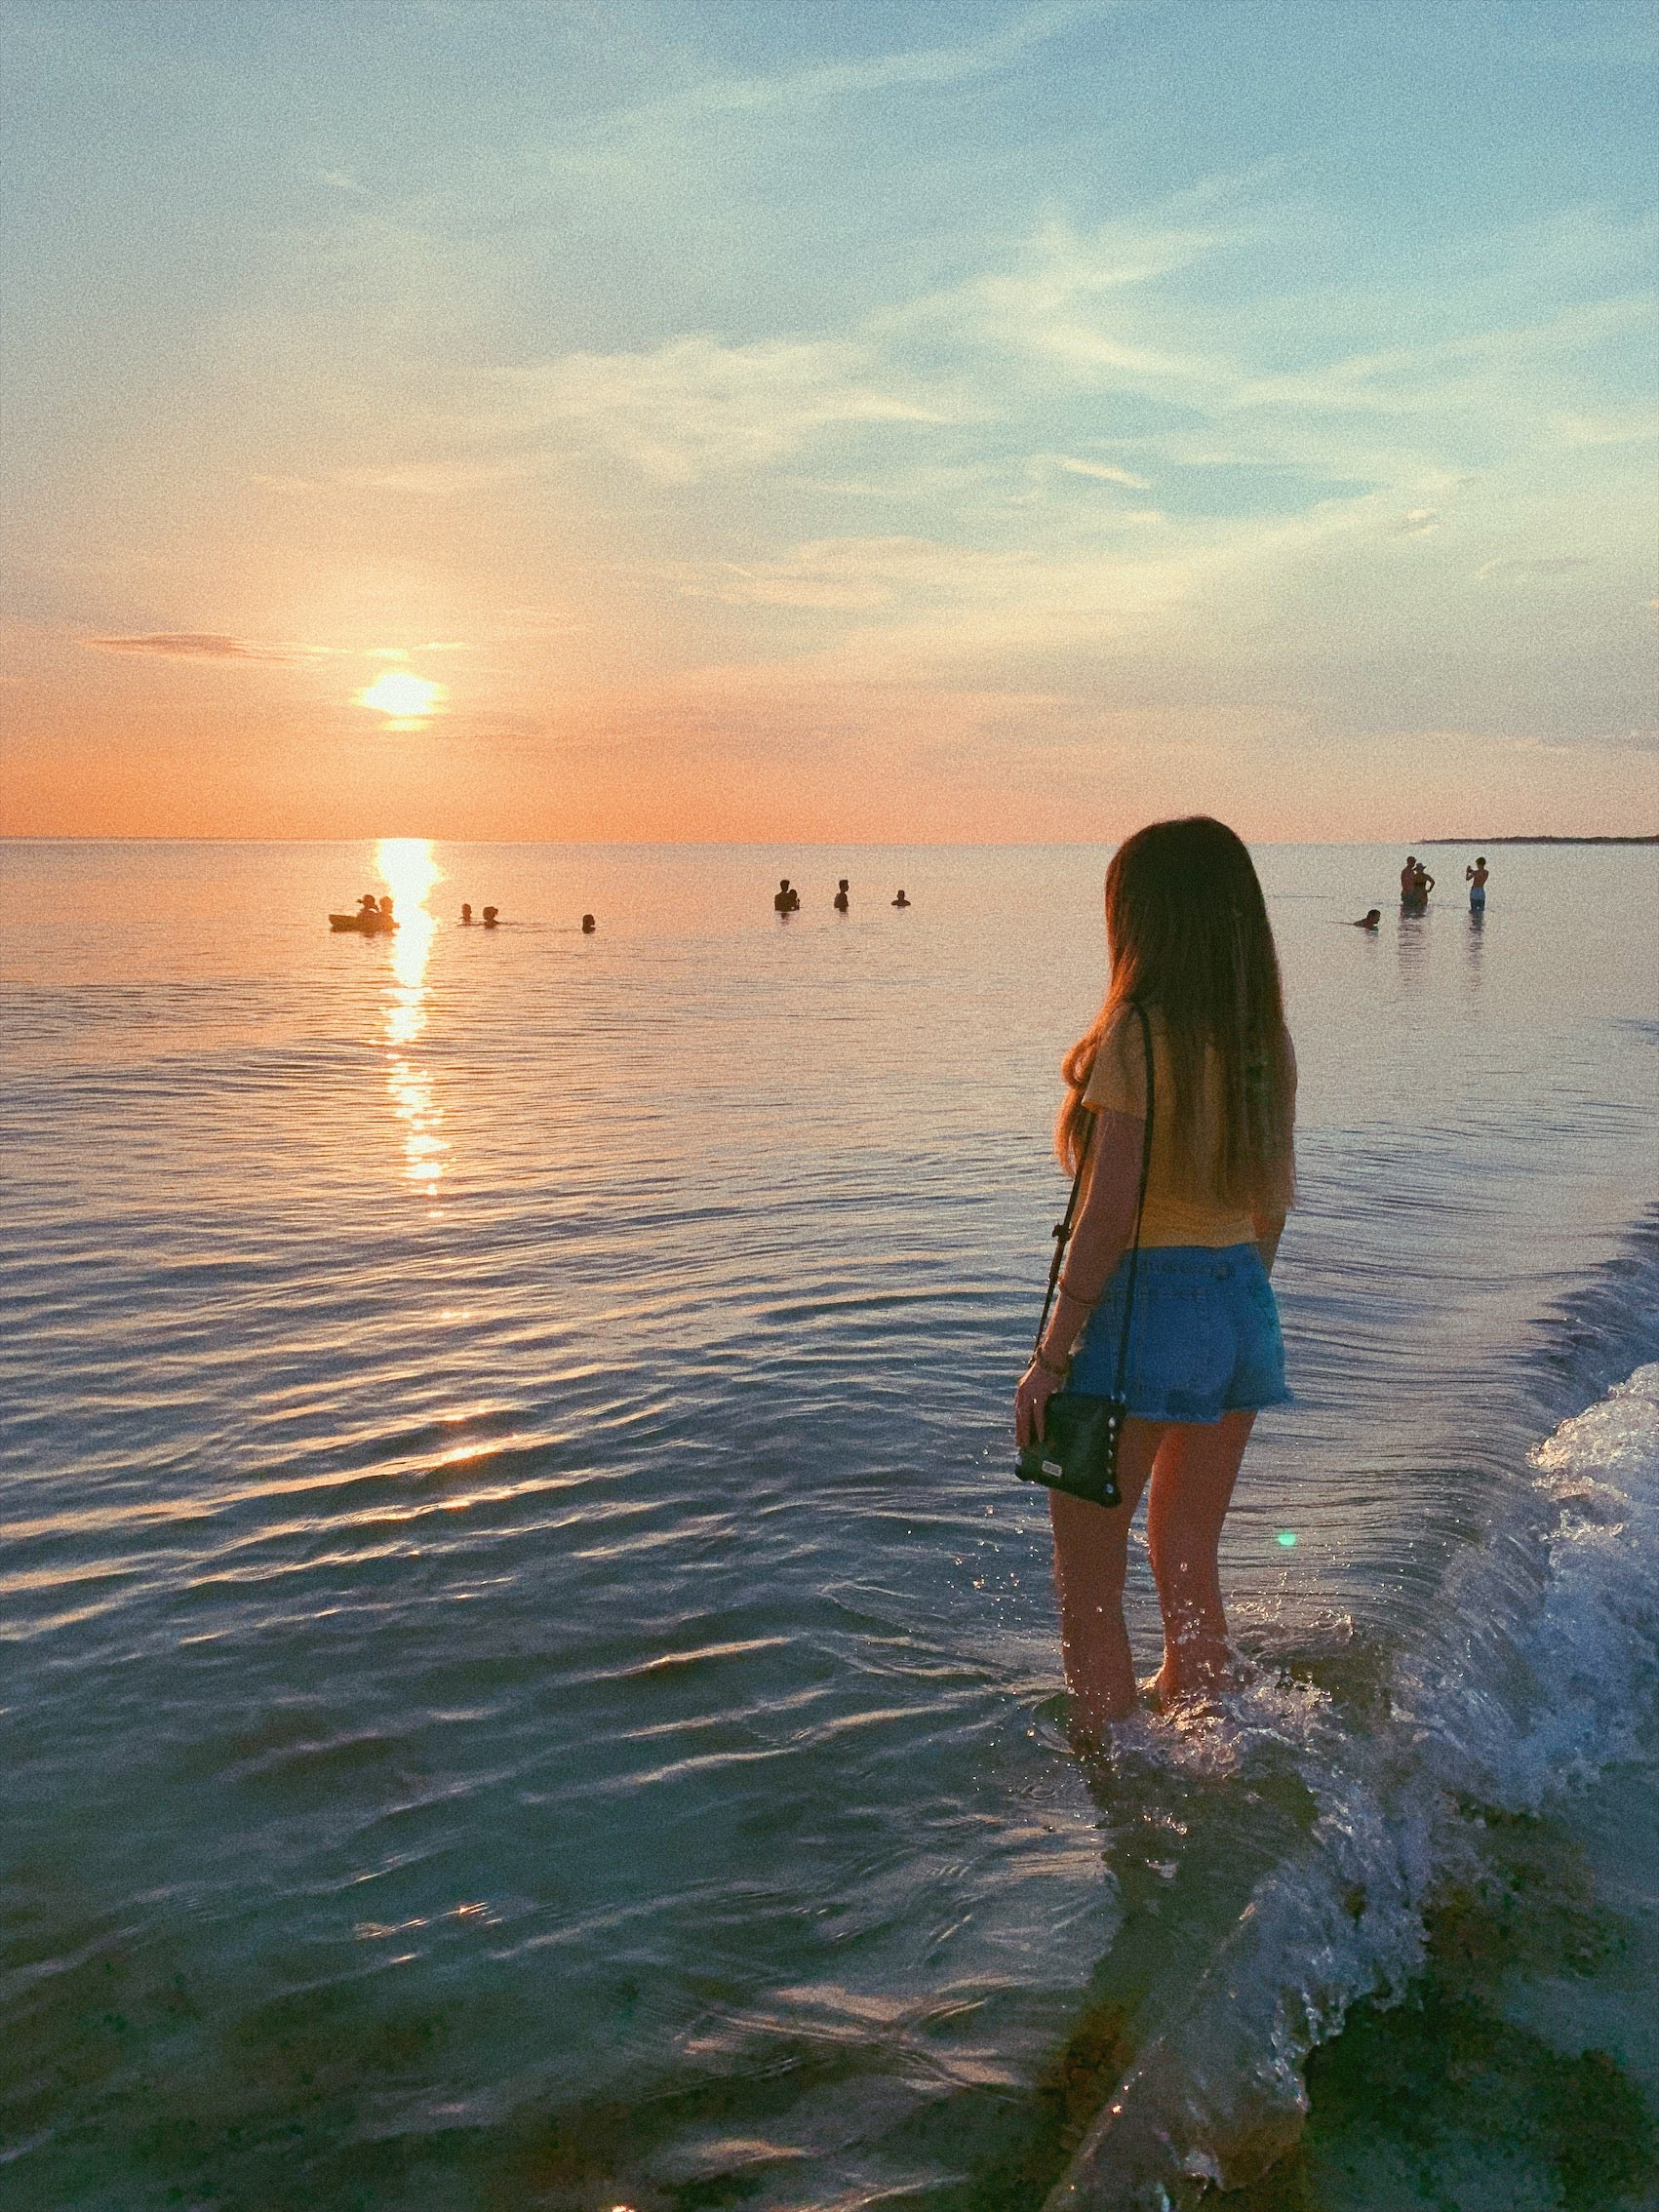 Marco Island Sunset. Enjoy this Marco Island travel guide and fun things to do in Marco Island!